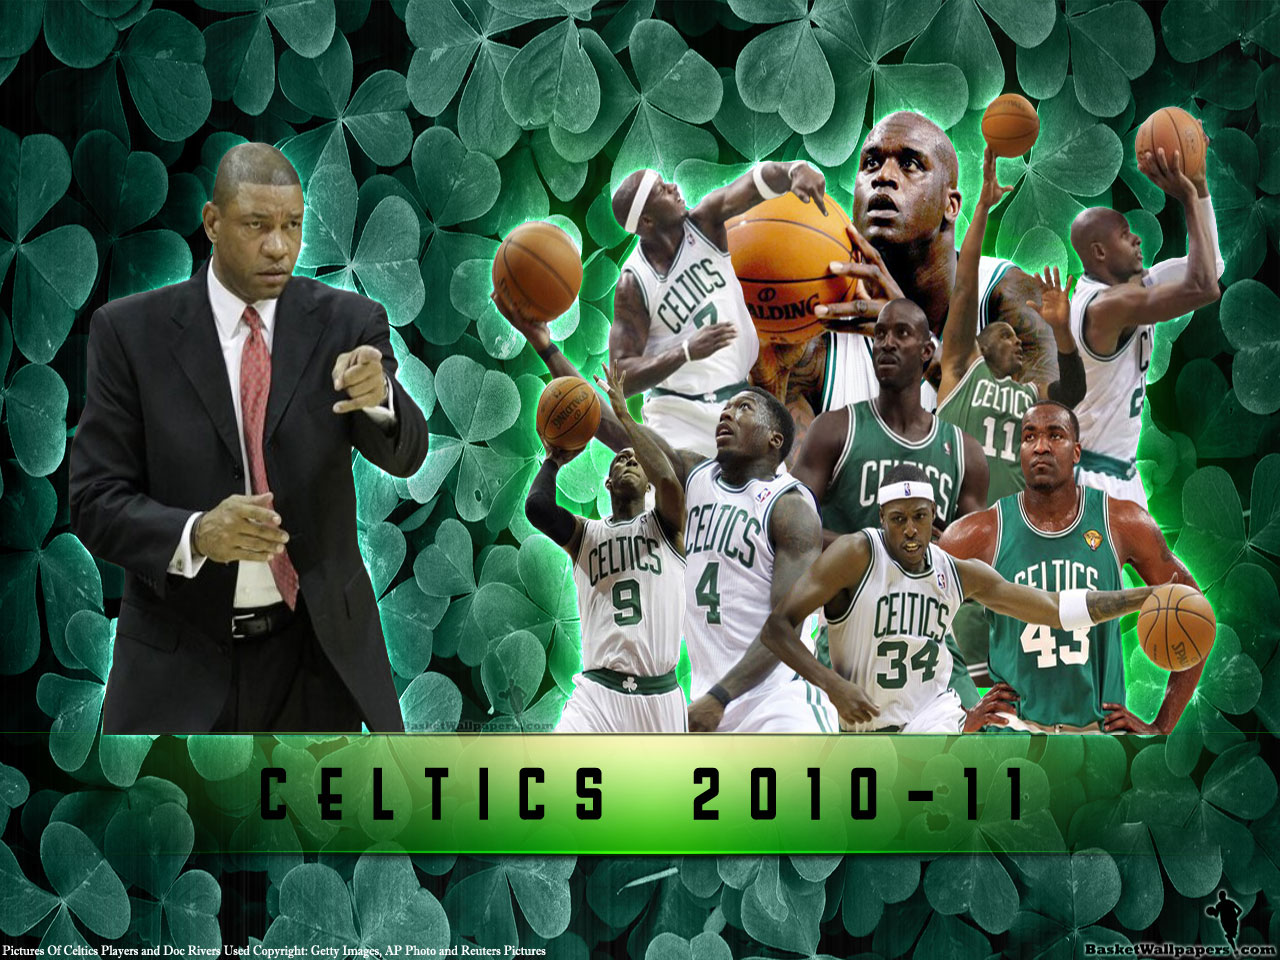 Boston Celtics 2010 11 Season Wallpaper Basketball Wallpapers At Basketwallpapers Com